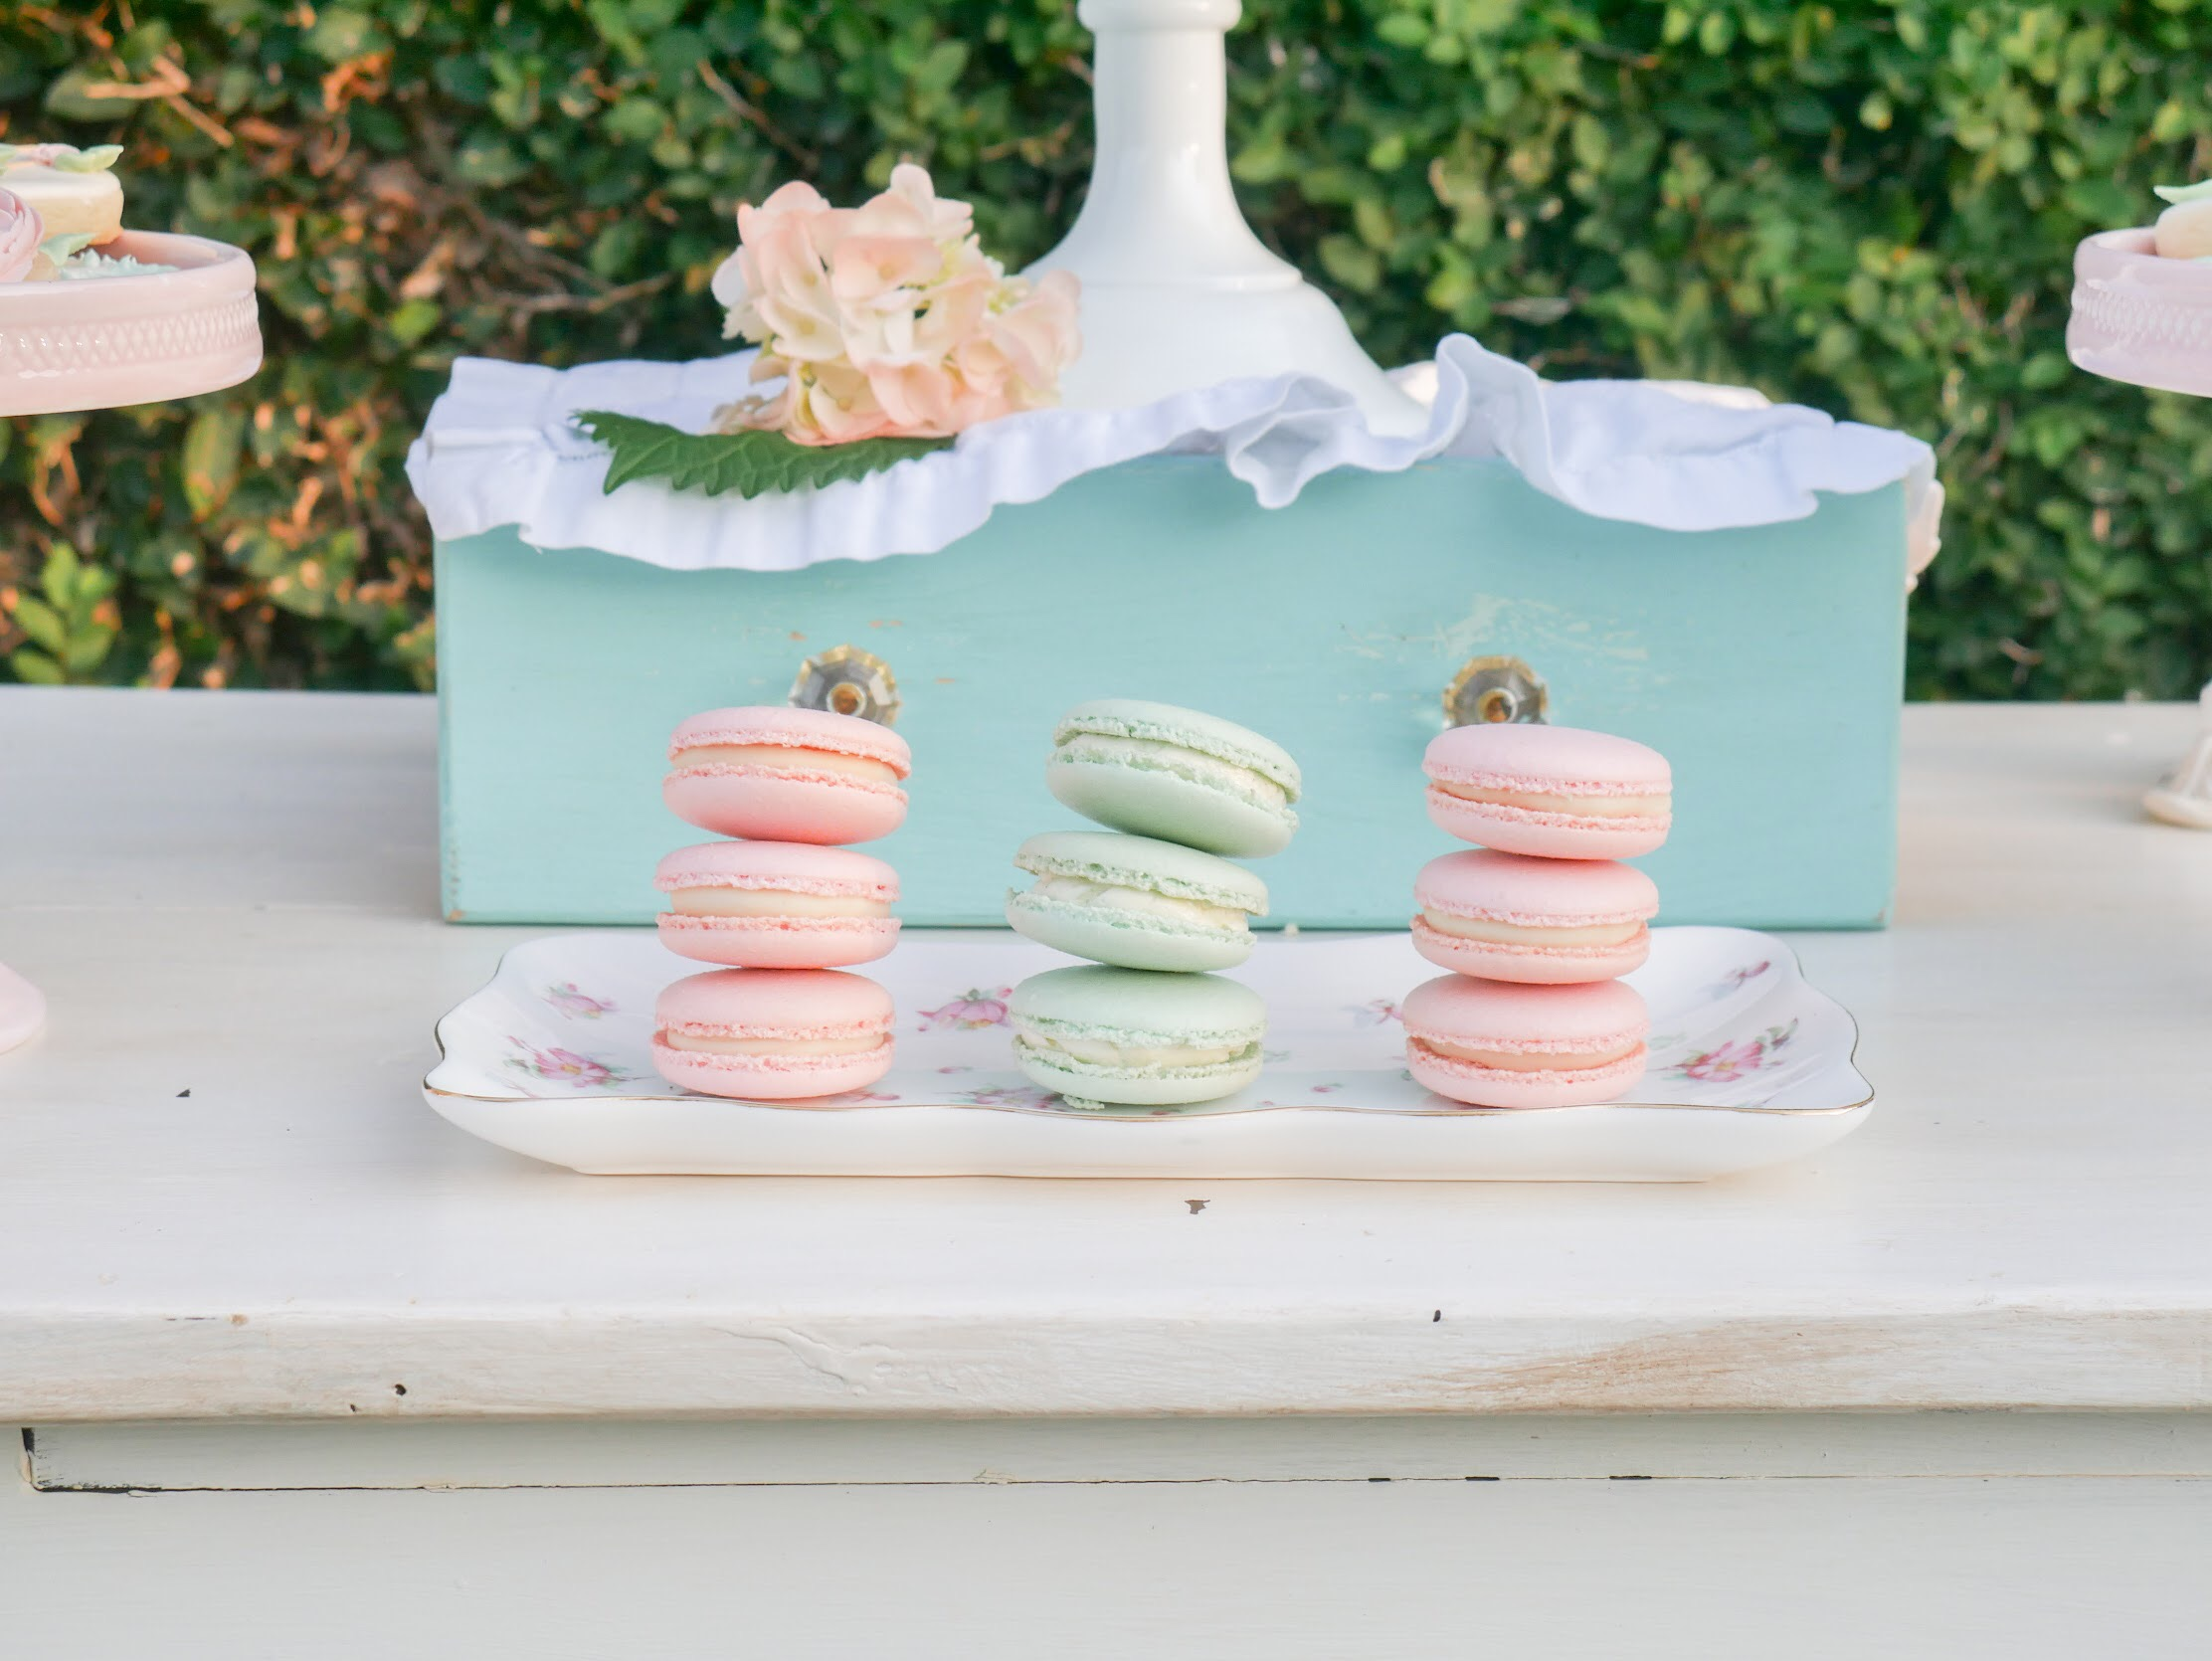 Stacked macarons are a fun dessert table presentation. As seen on Mint Event Design www.minteventdesign.com